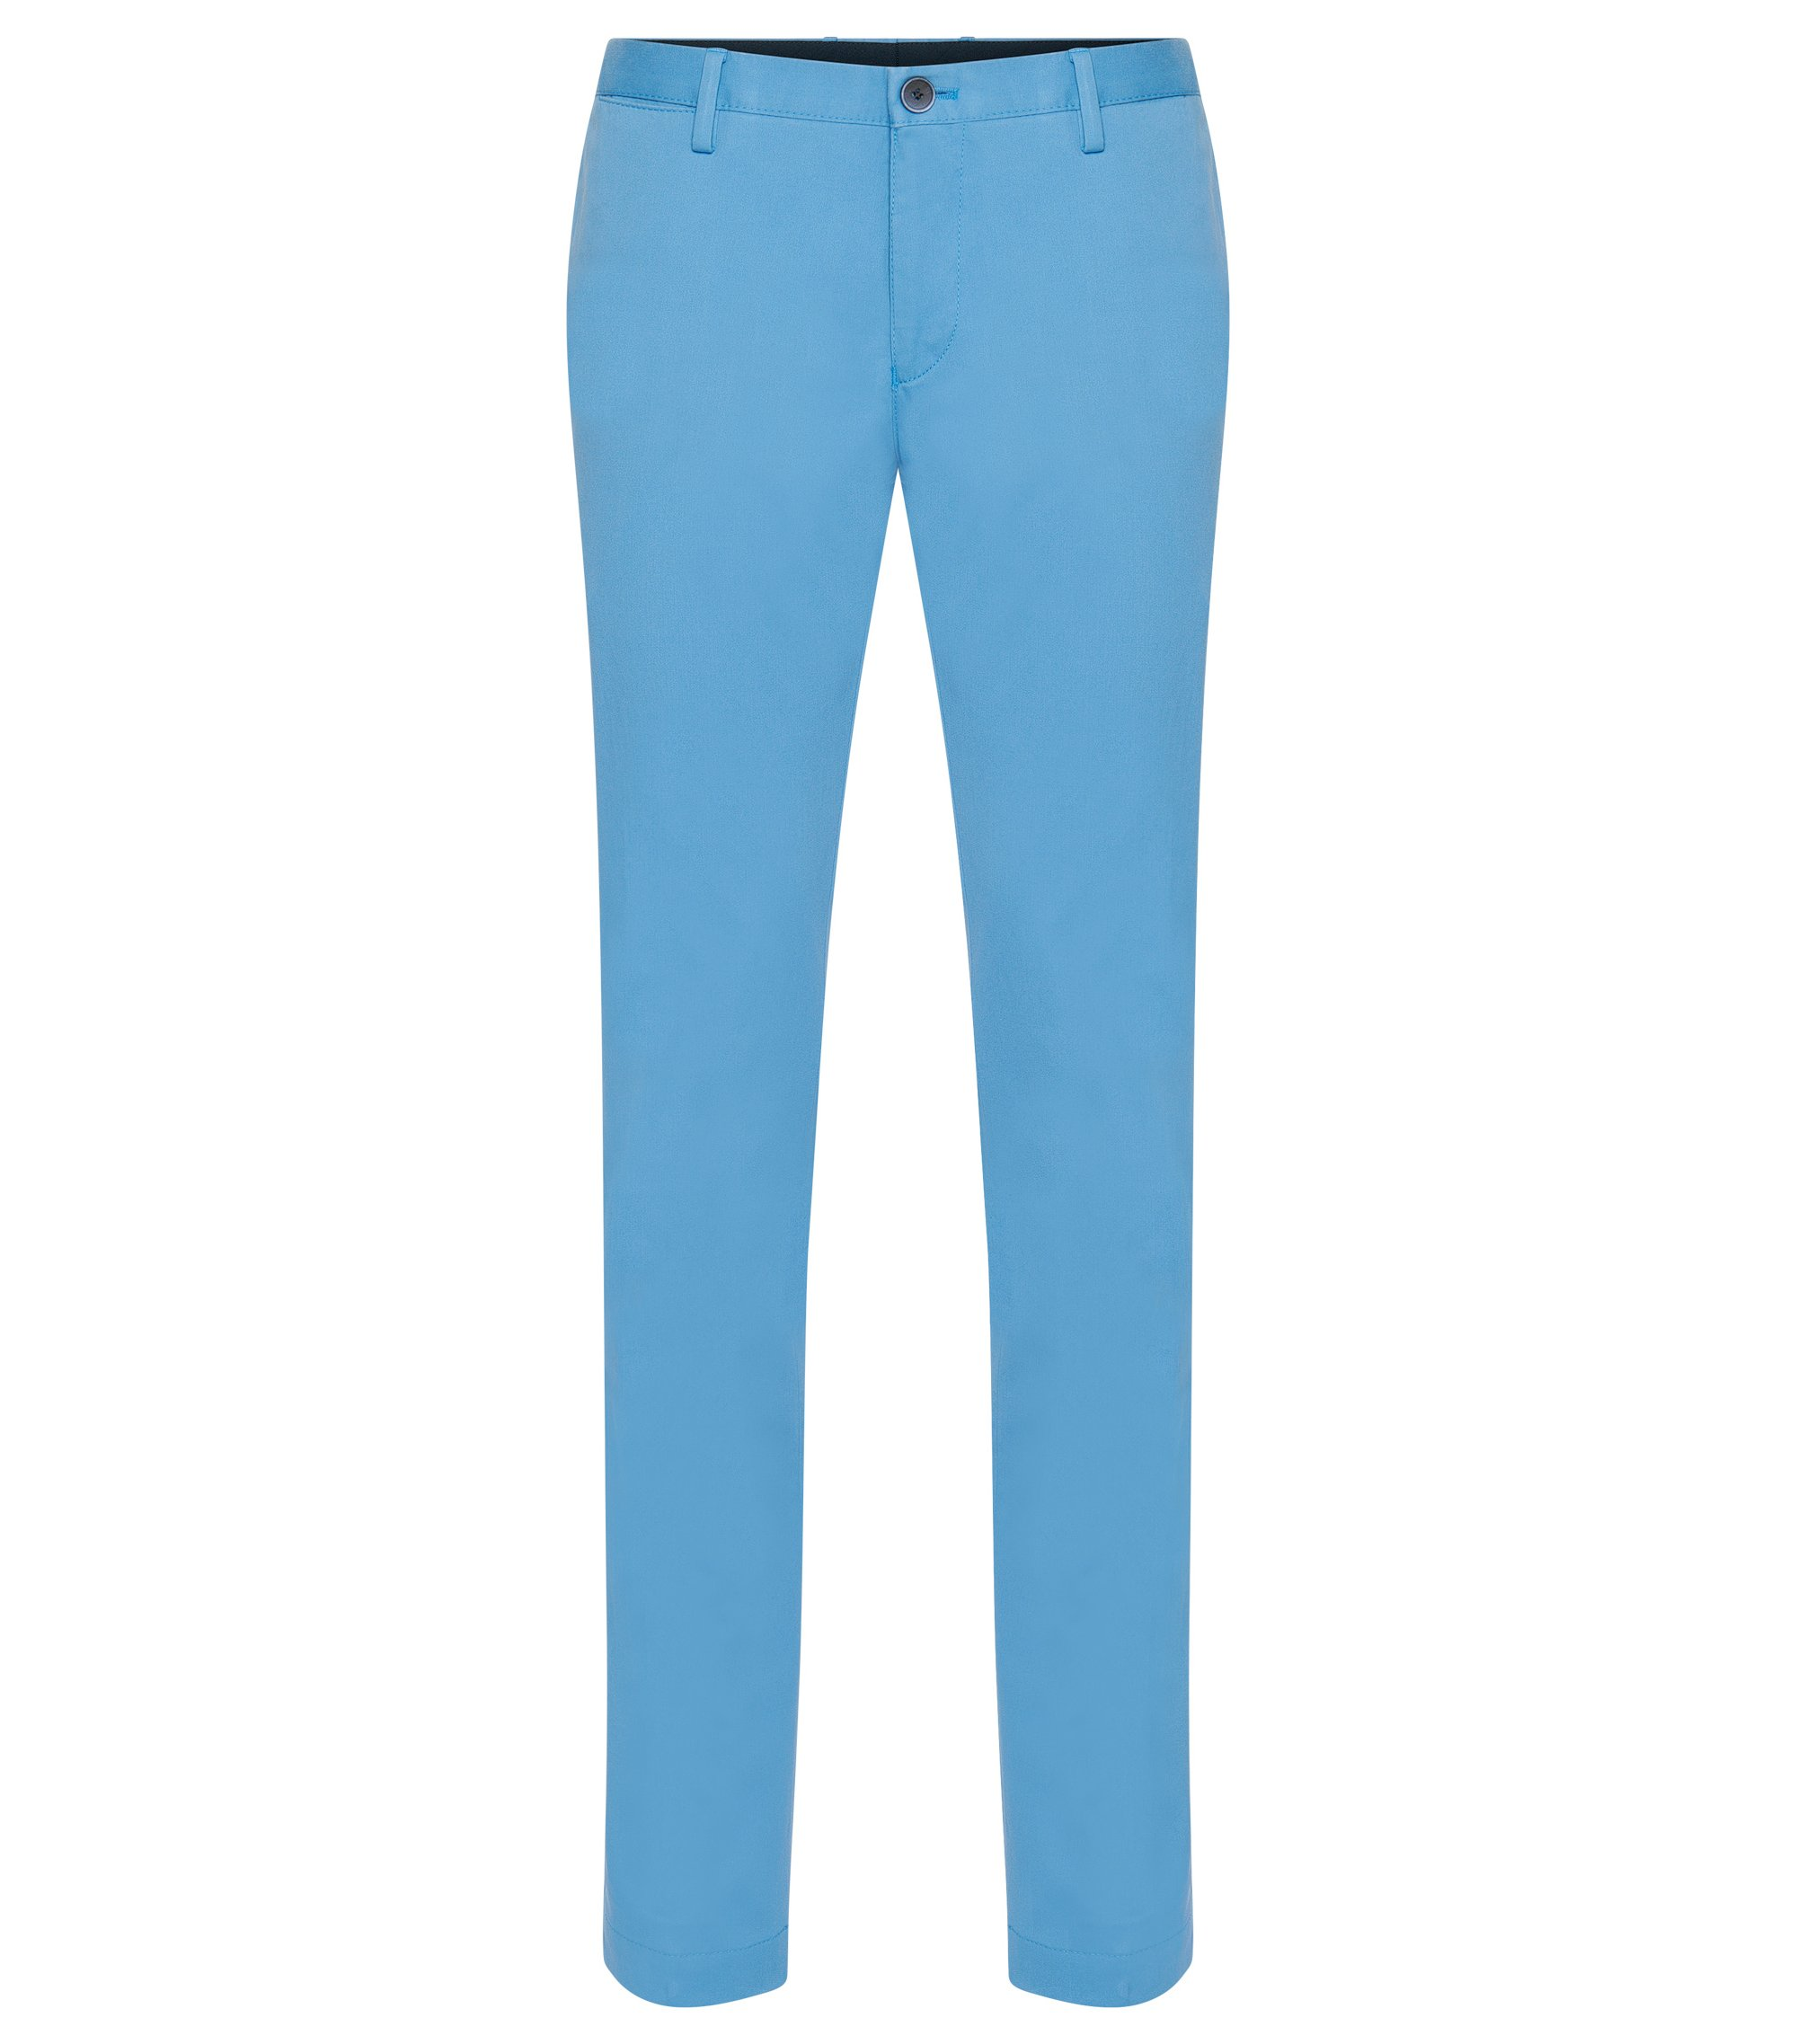 Stretch Cotton Chino Pant, Slim Fit | Stanino W, Light Blue